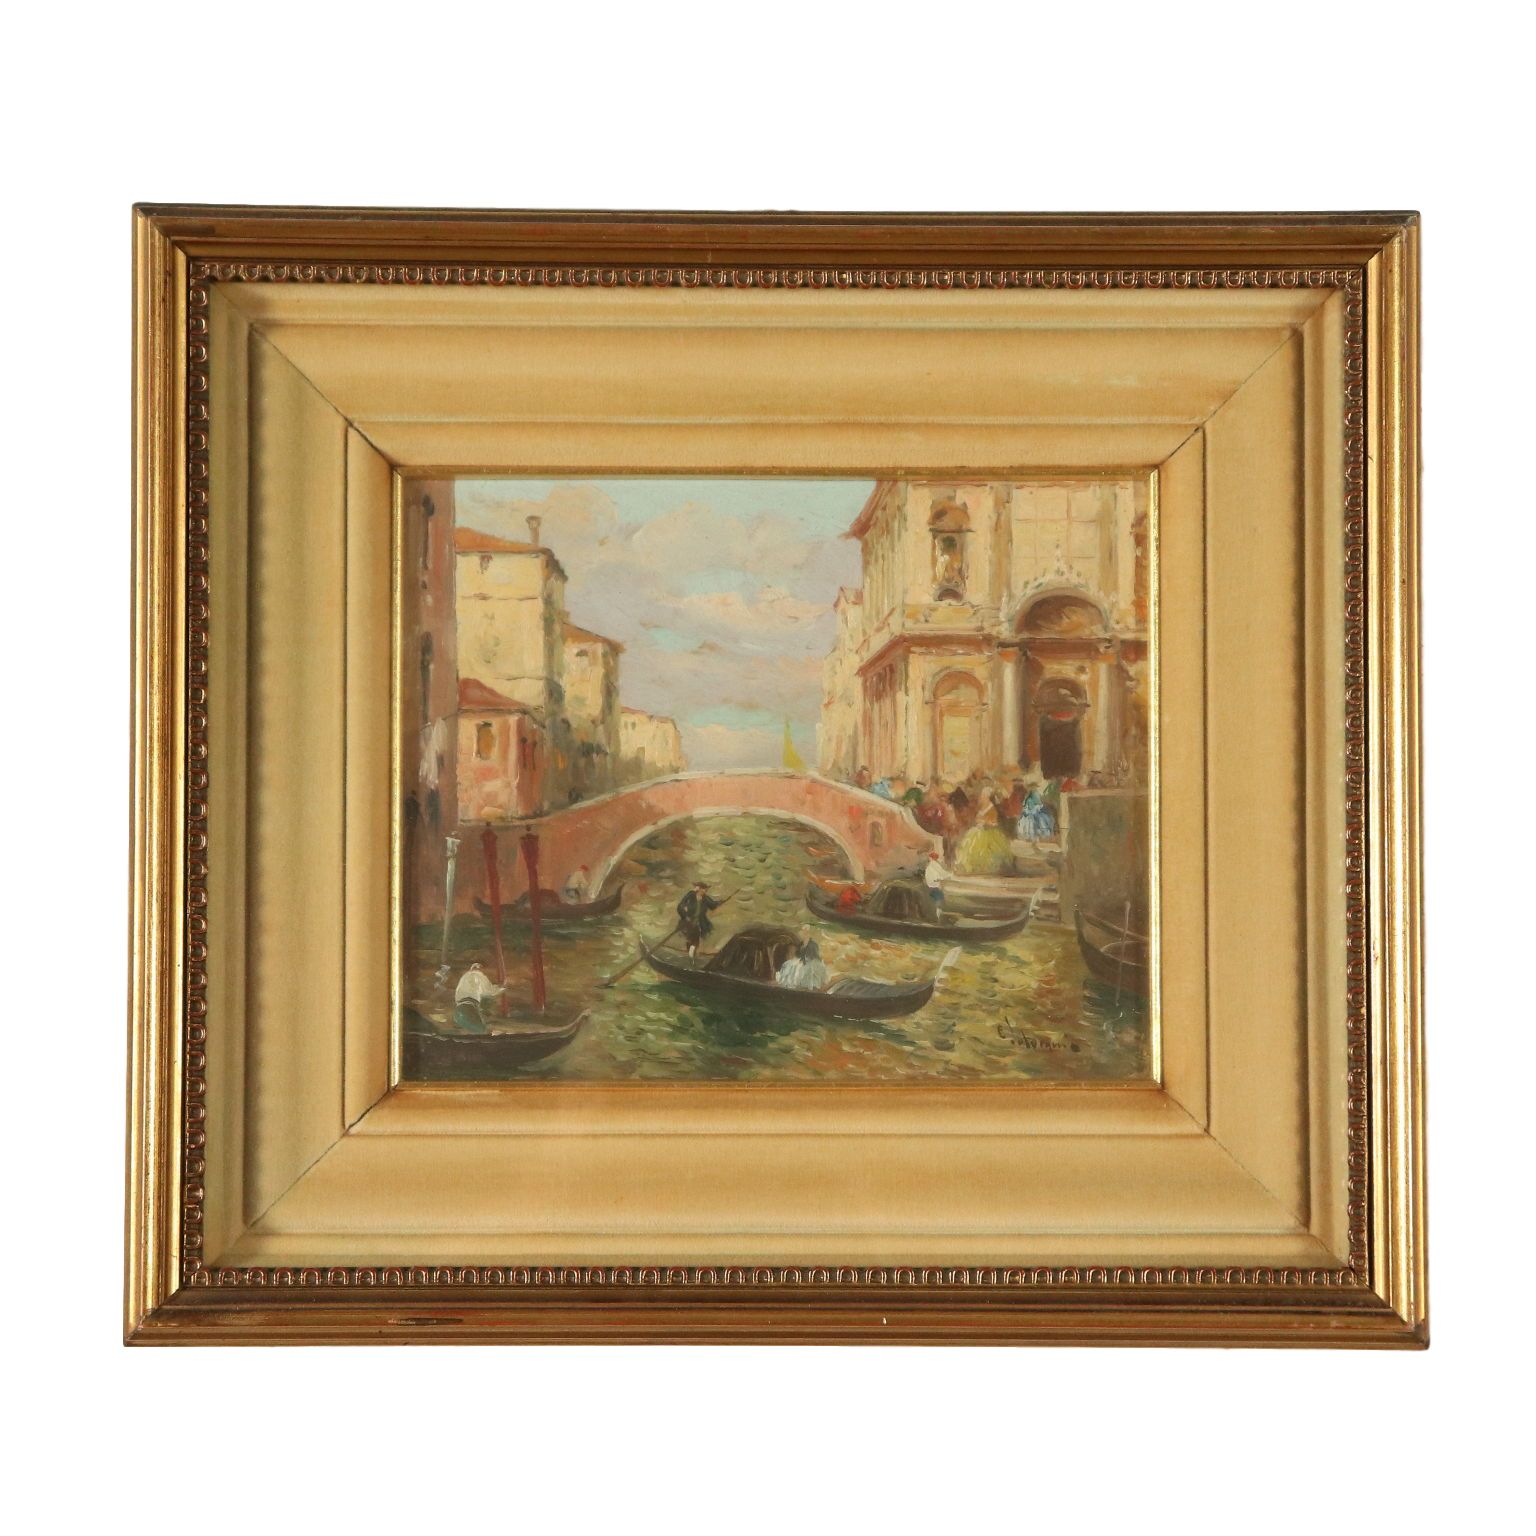 Photo of View of Venice from Ettore Solvegni 19th century painting